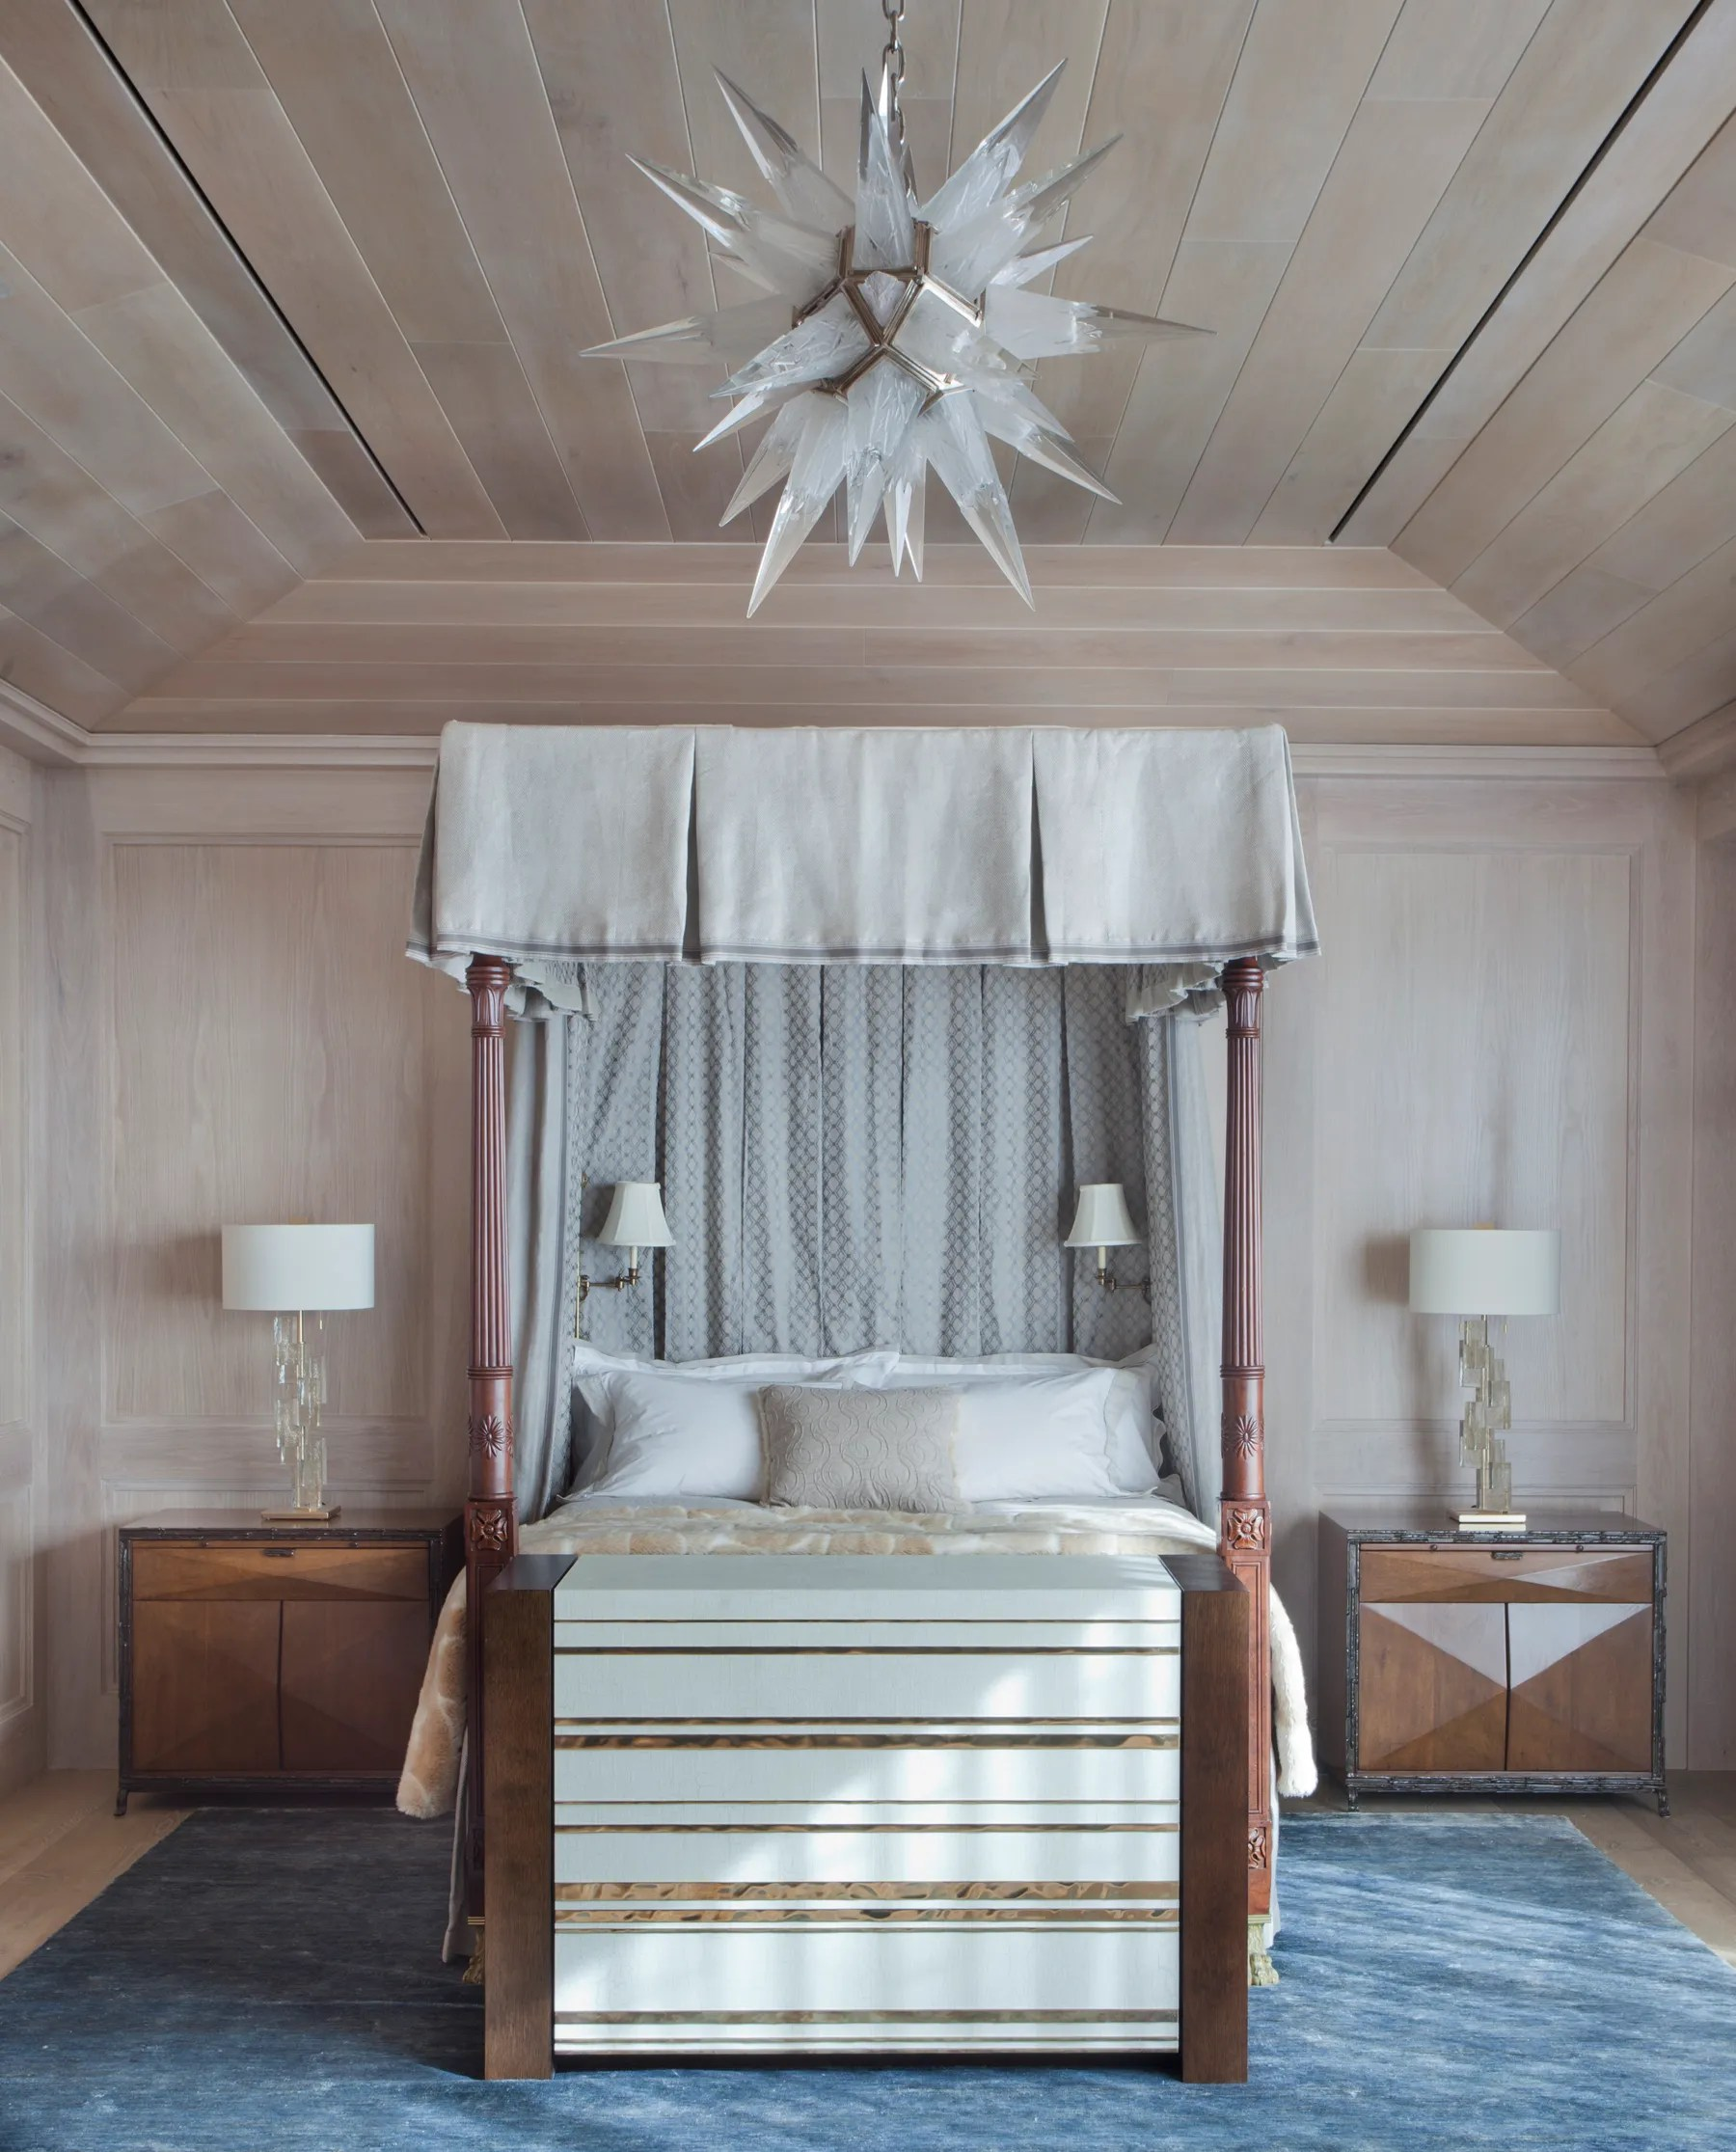 Pictures Of Cozy Bedrooms How To Create A Cozy Bedroom For Winter Architectural Digest